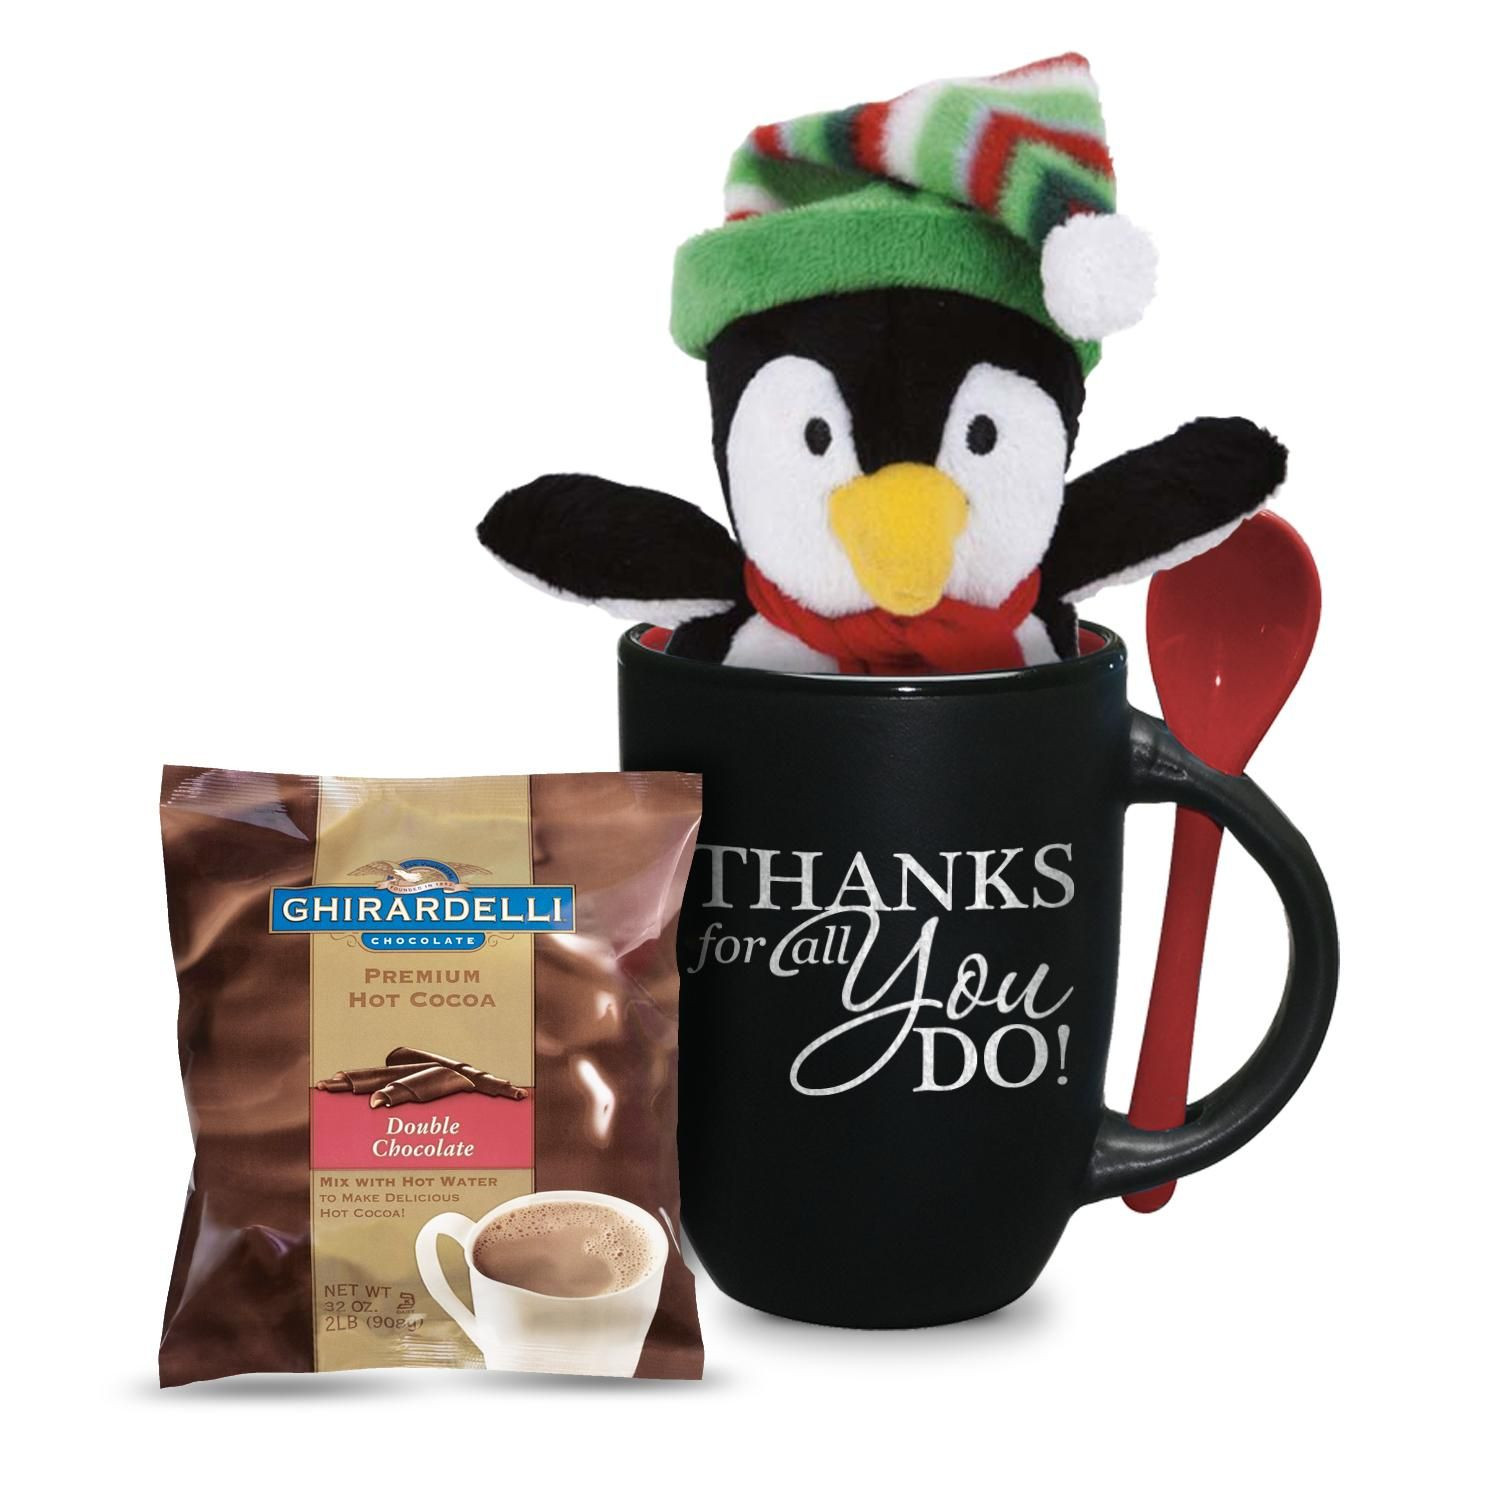 Corporate Holiday Party Gift Ideas  Thanks For All You Do Penguin Gift Set